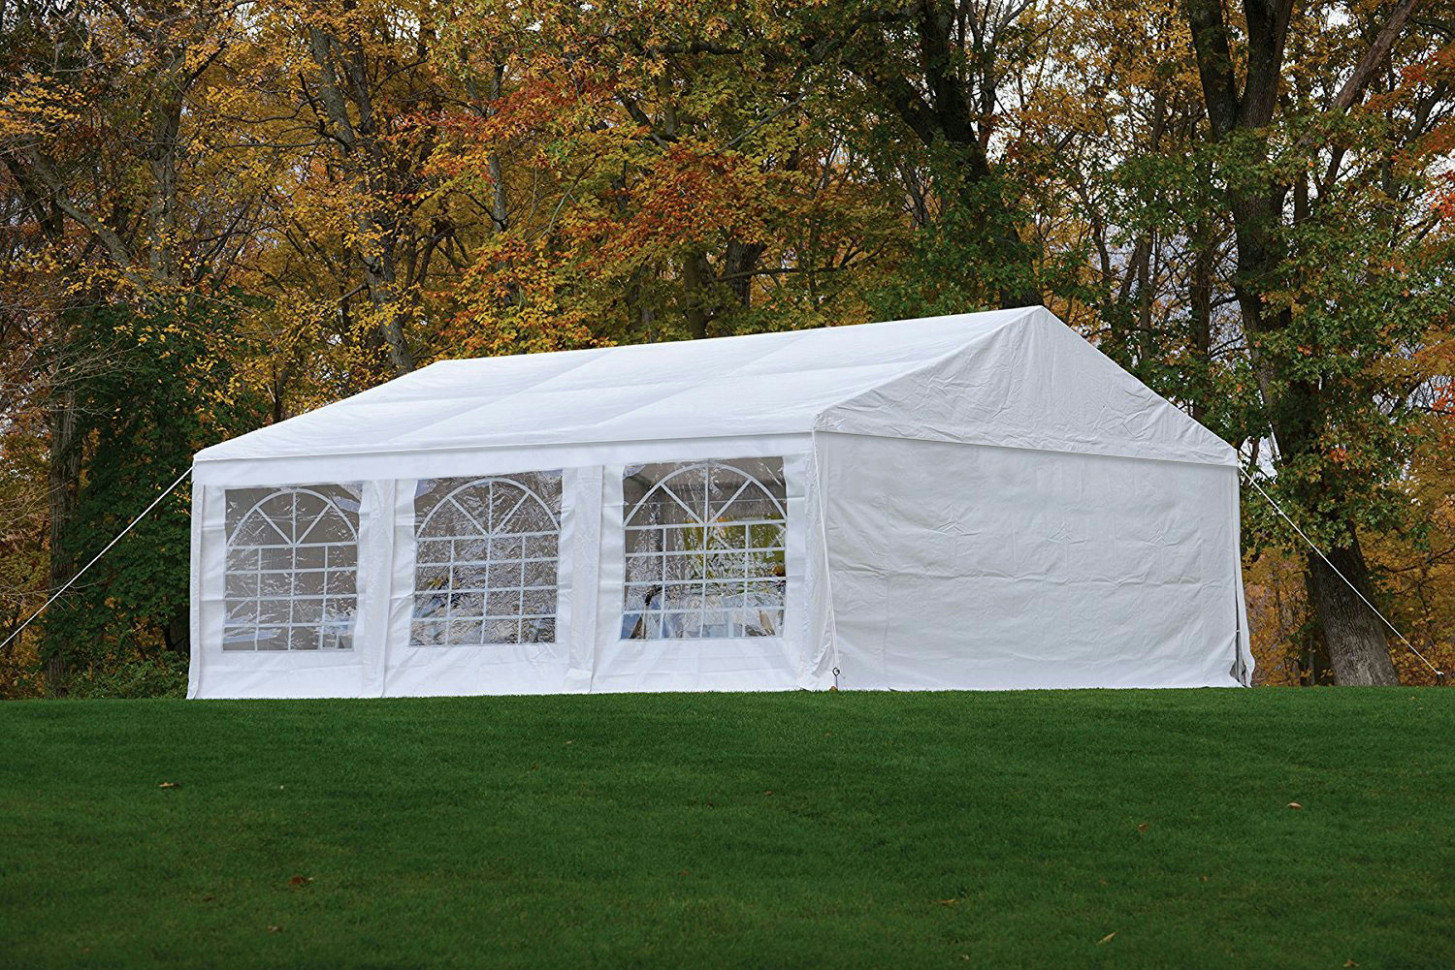 Details About Quictnt 8x8m Marquee Party Tent Garden Gazebo Event Shelter Canopy Carport Carport Canopy Scotland